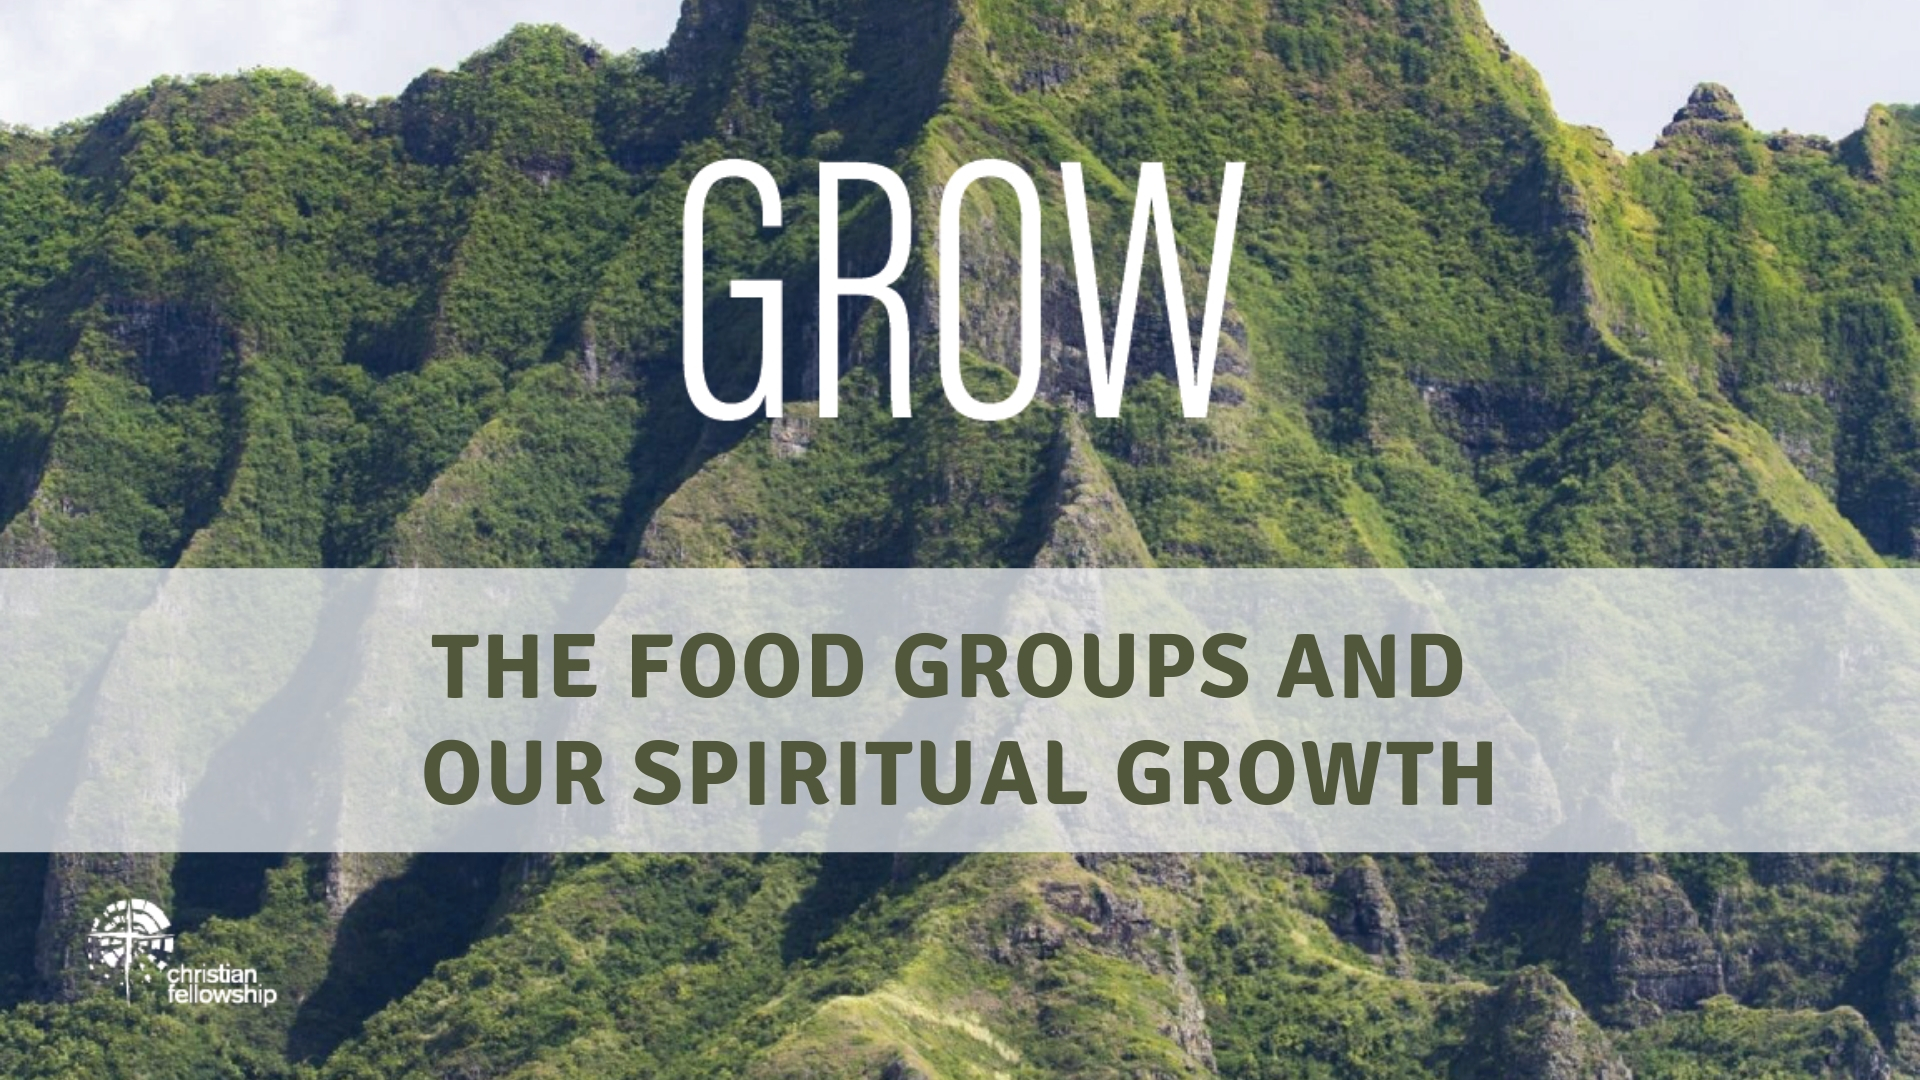 The food groups and our spiritual growth